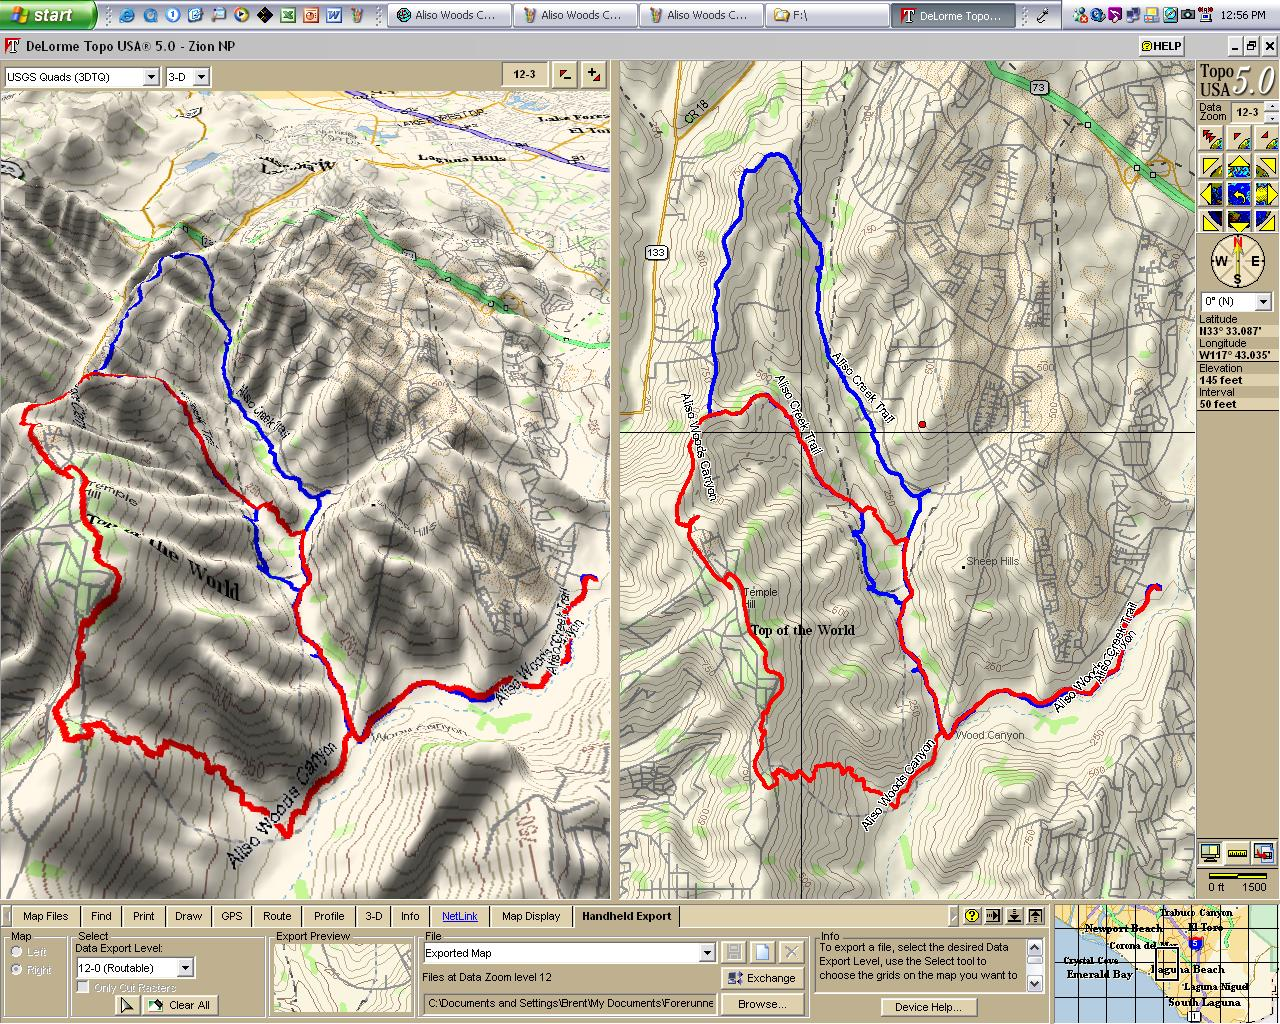 Current Image is BFelsted/Aliso_Woods_Canyon_topo_3D.JPG Clicking here will display Aliso_Woods_Canyon_topo.JPG